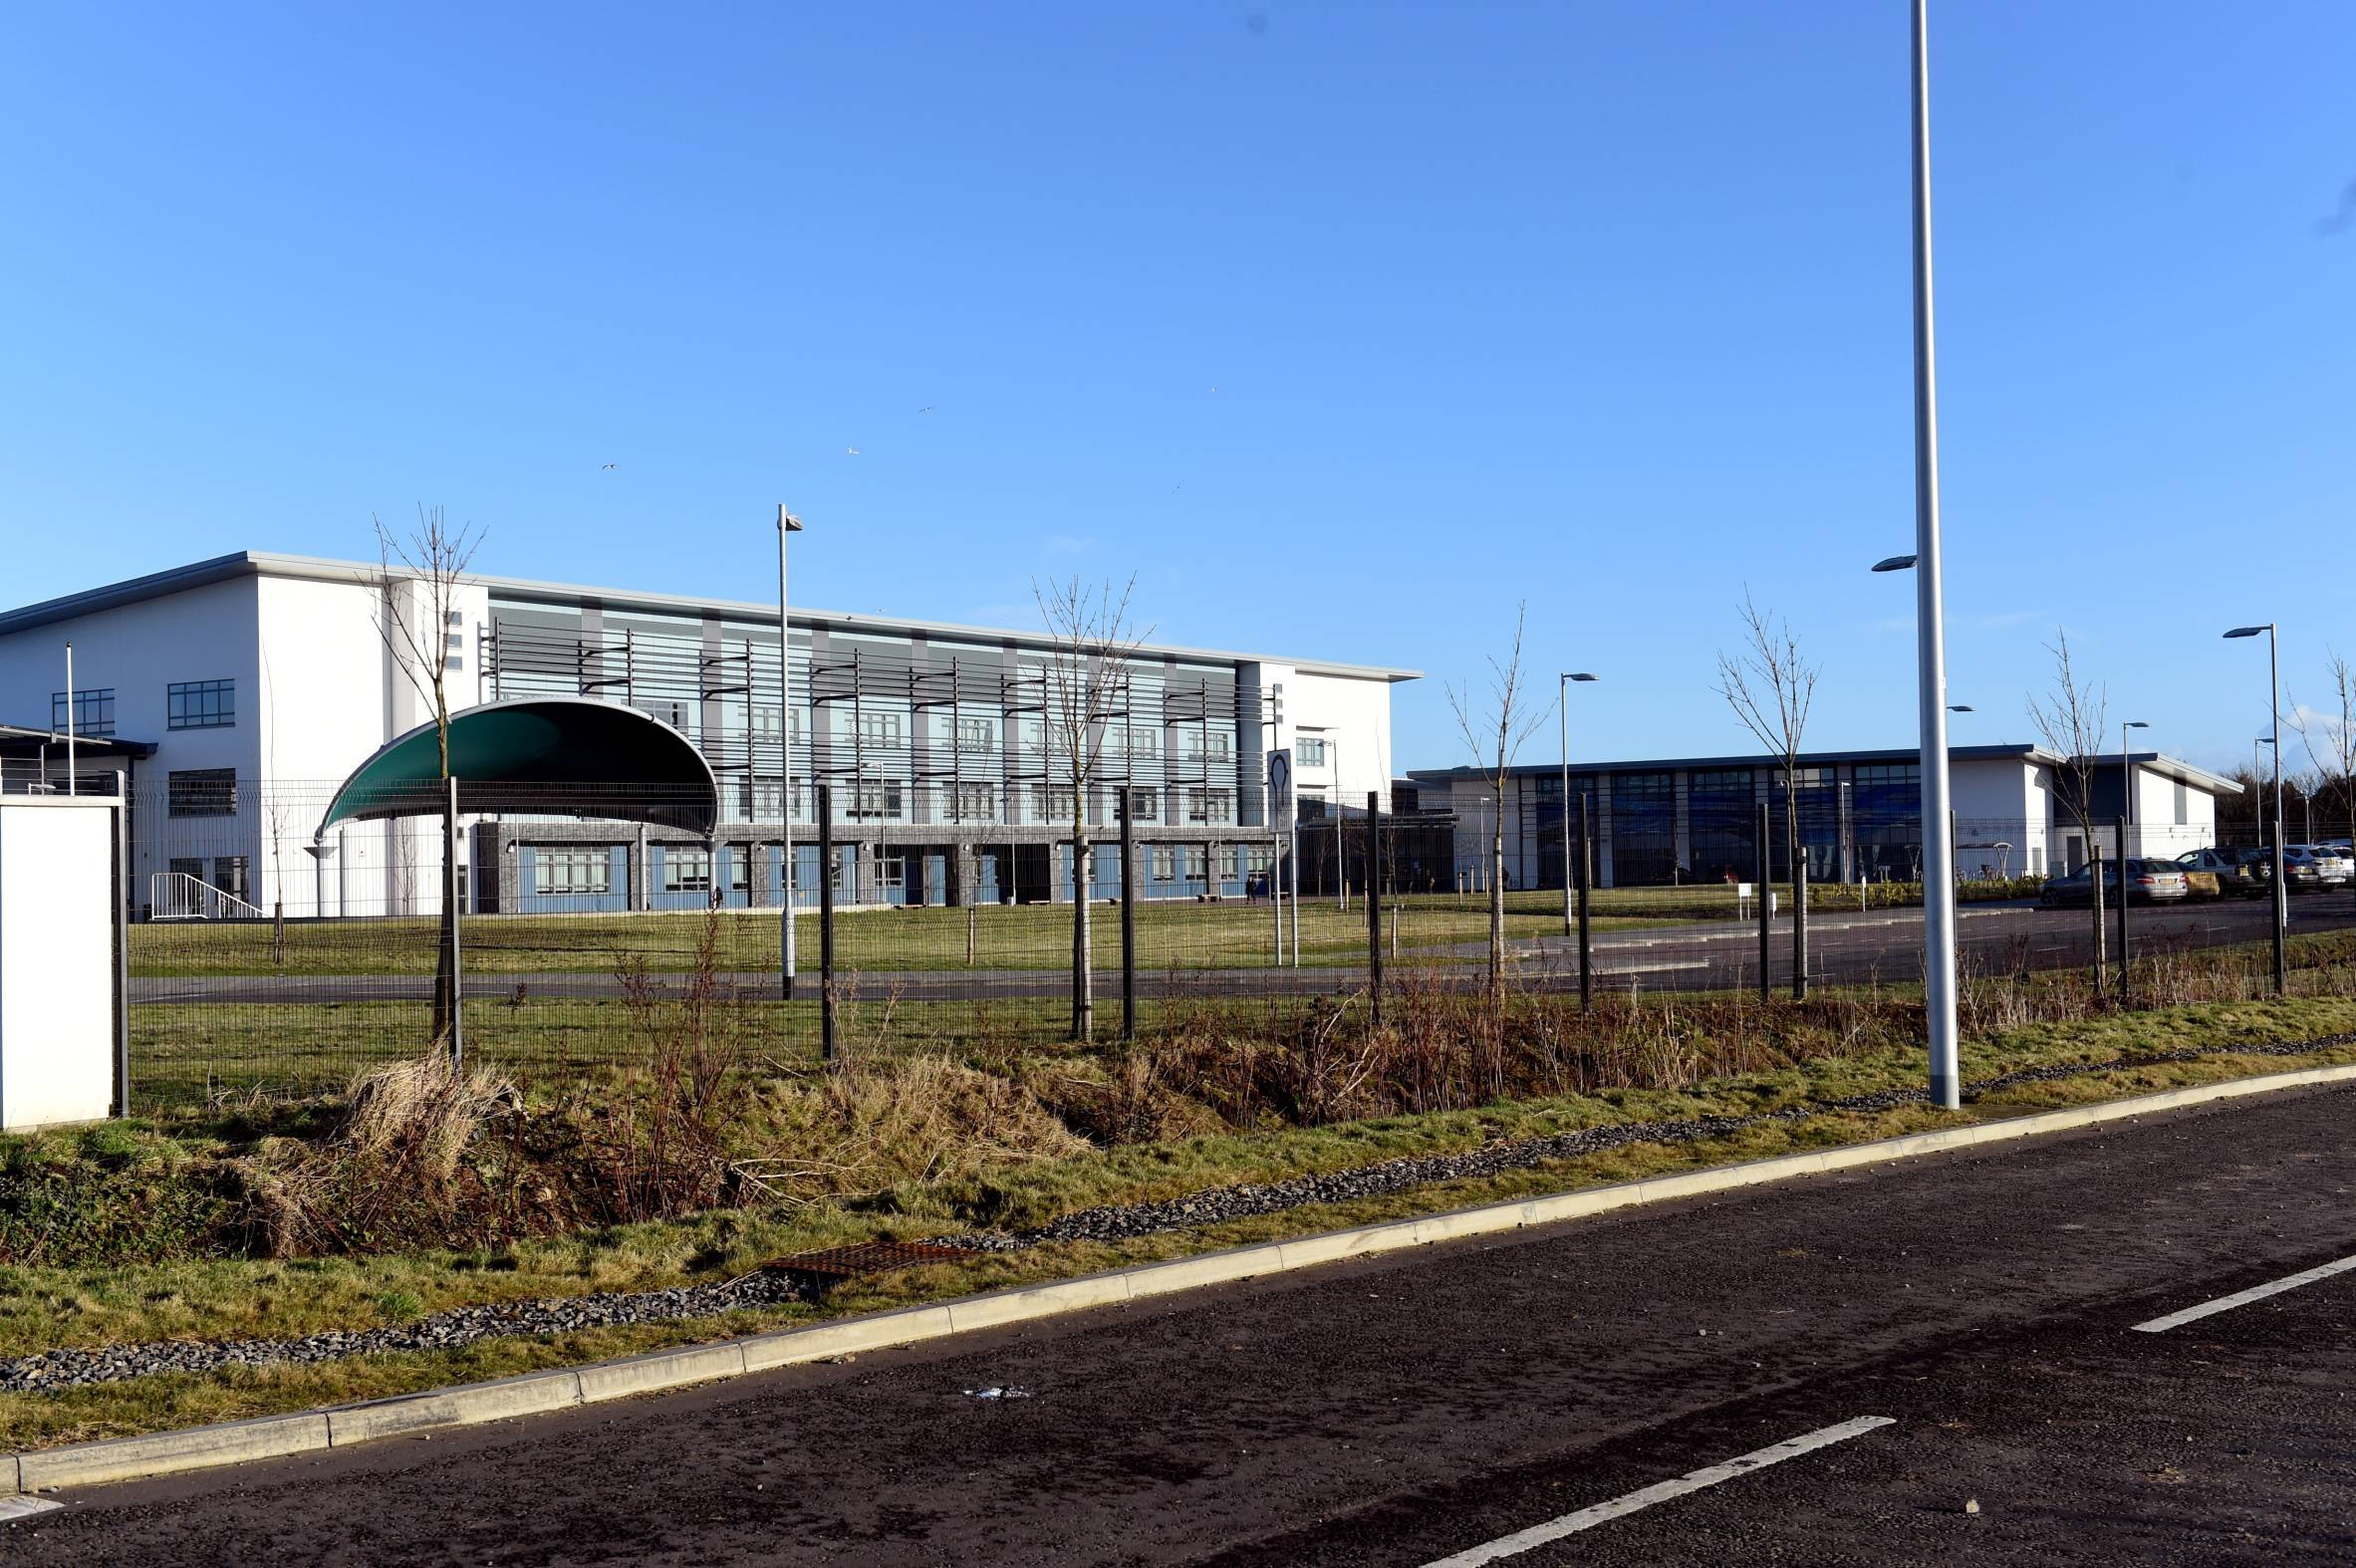 The event is being held at Ellon Academy